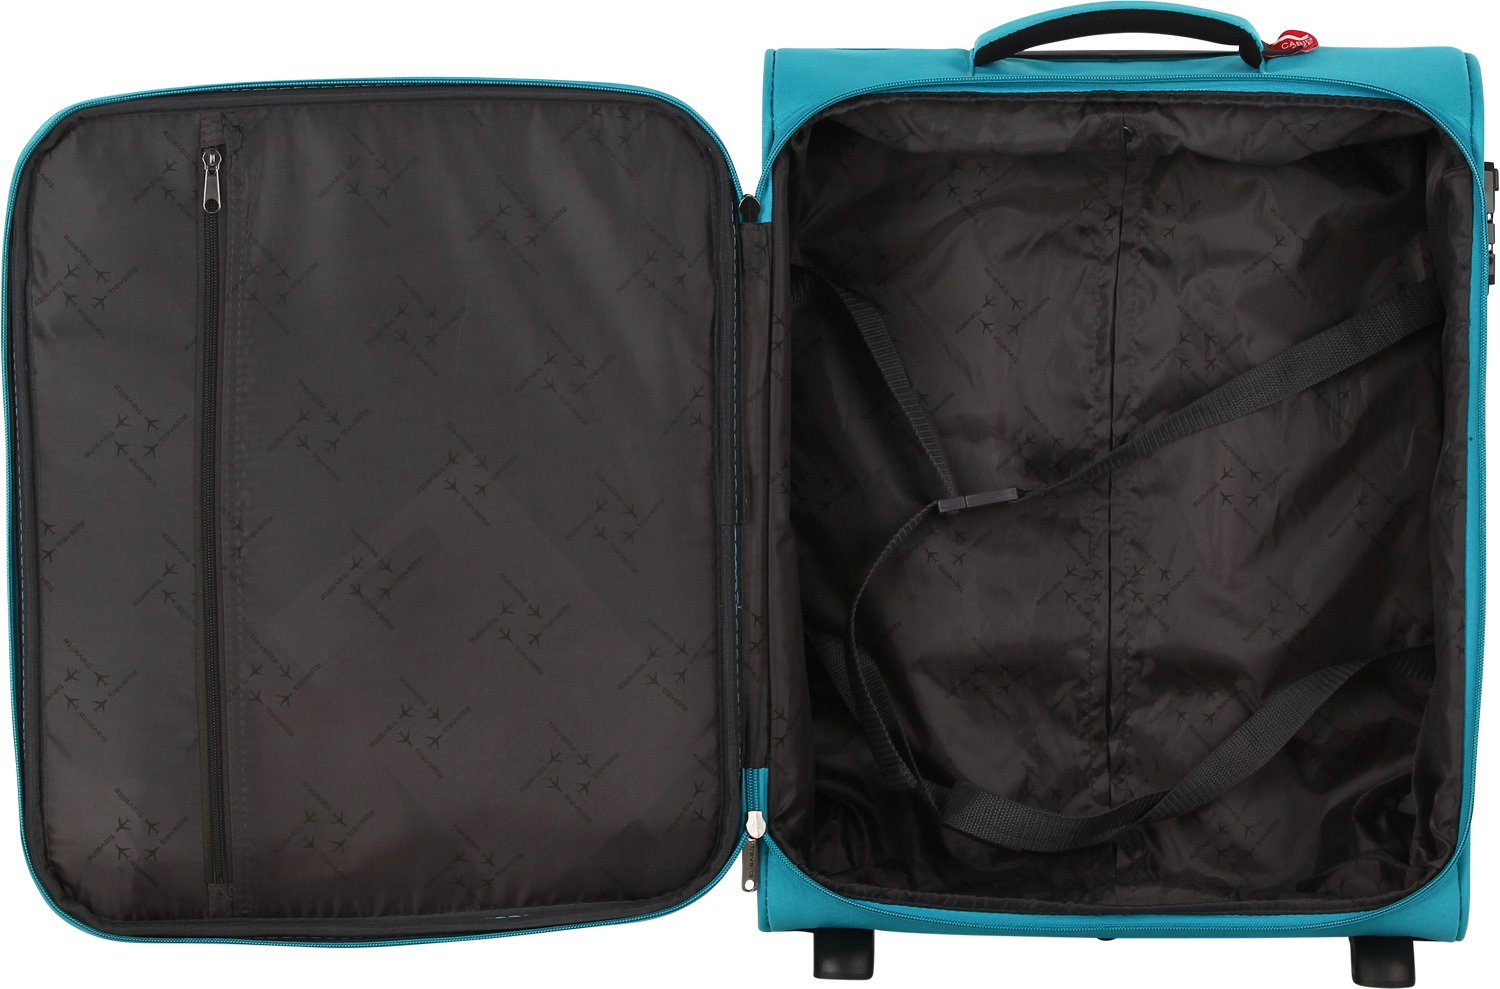 Amazon.com | Travelite CABIN 2Rad Bordtrolley, Türkis, 90237-23 Hand Luggage, 52 cm, 39 liters, Turquoise (Türkis) | Carry-Ons